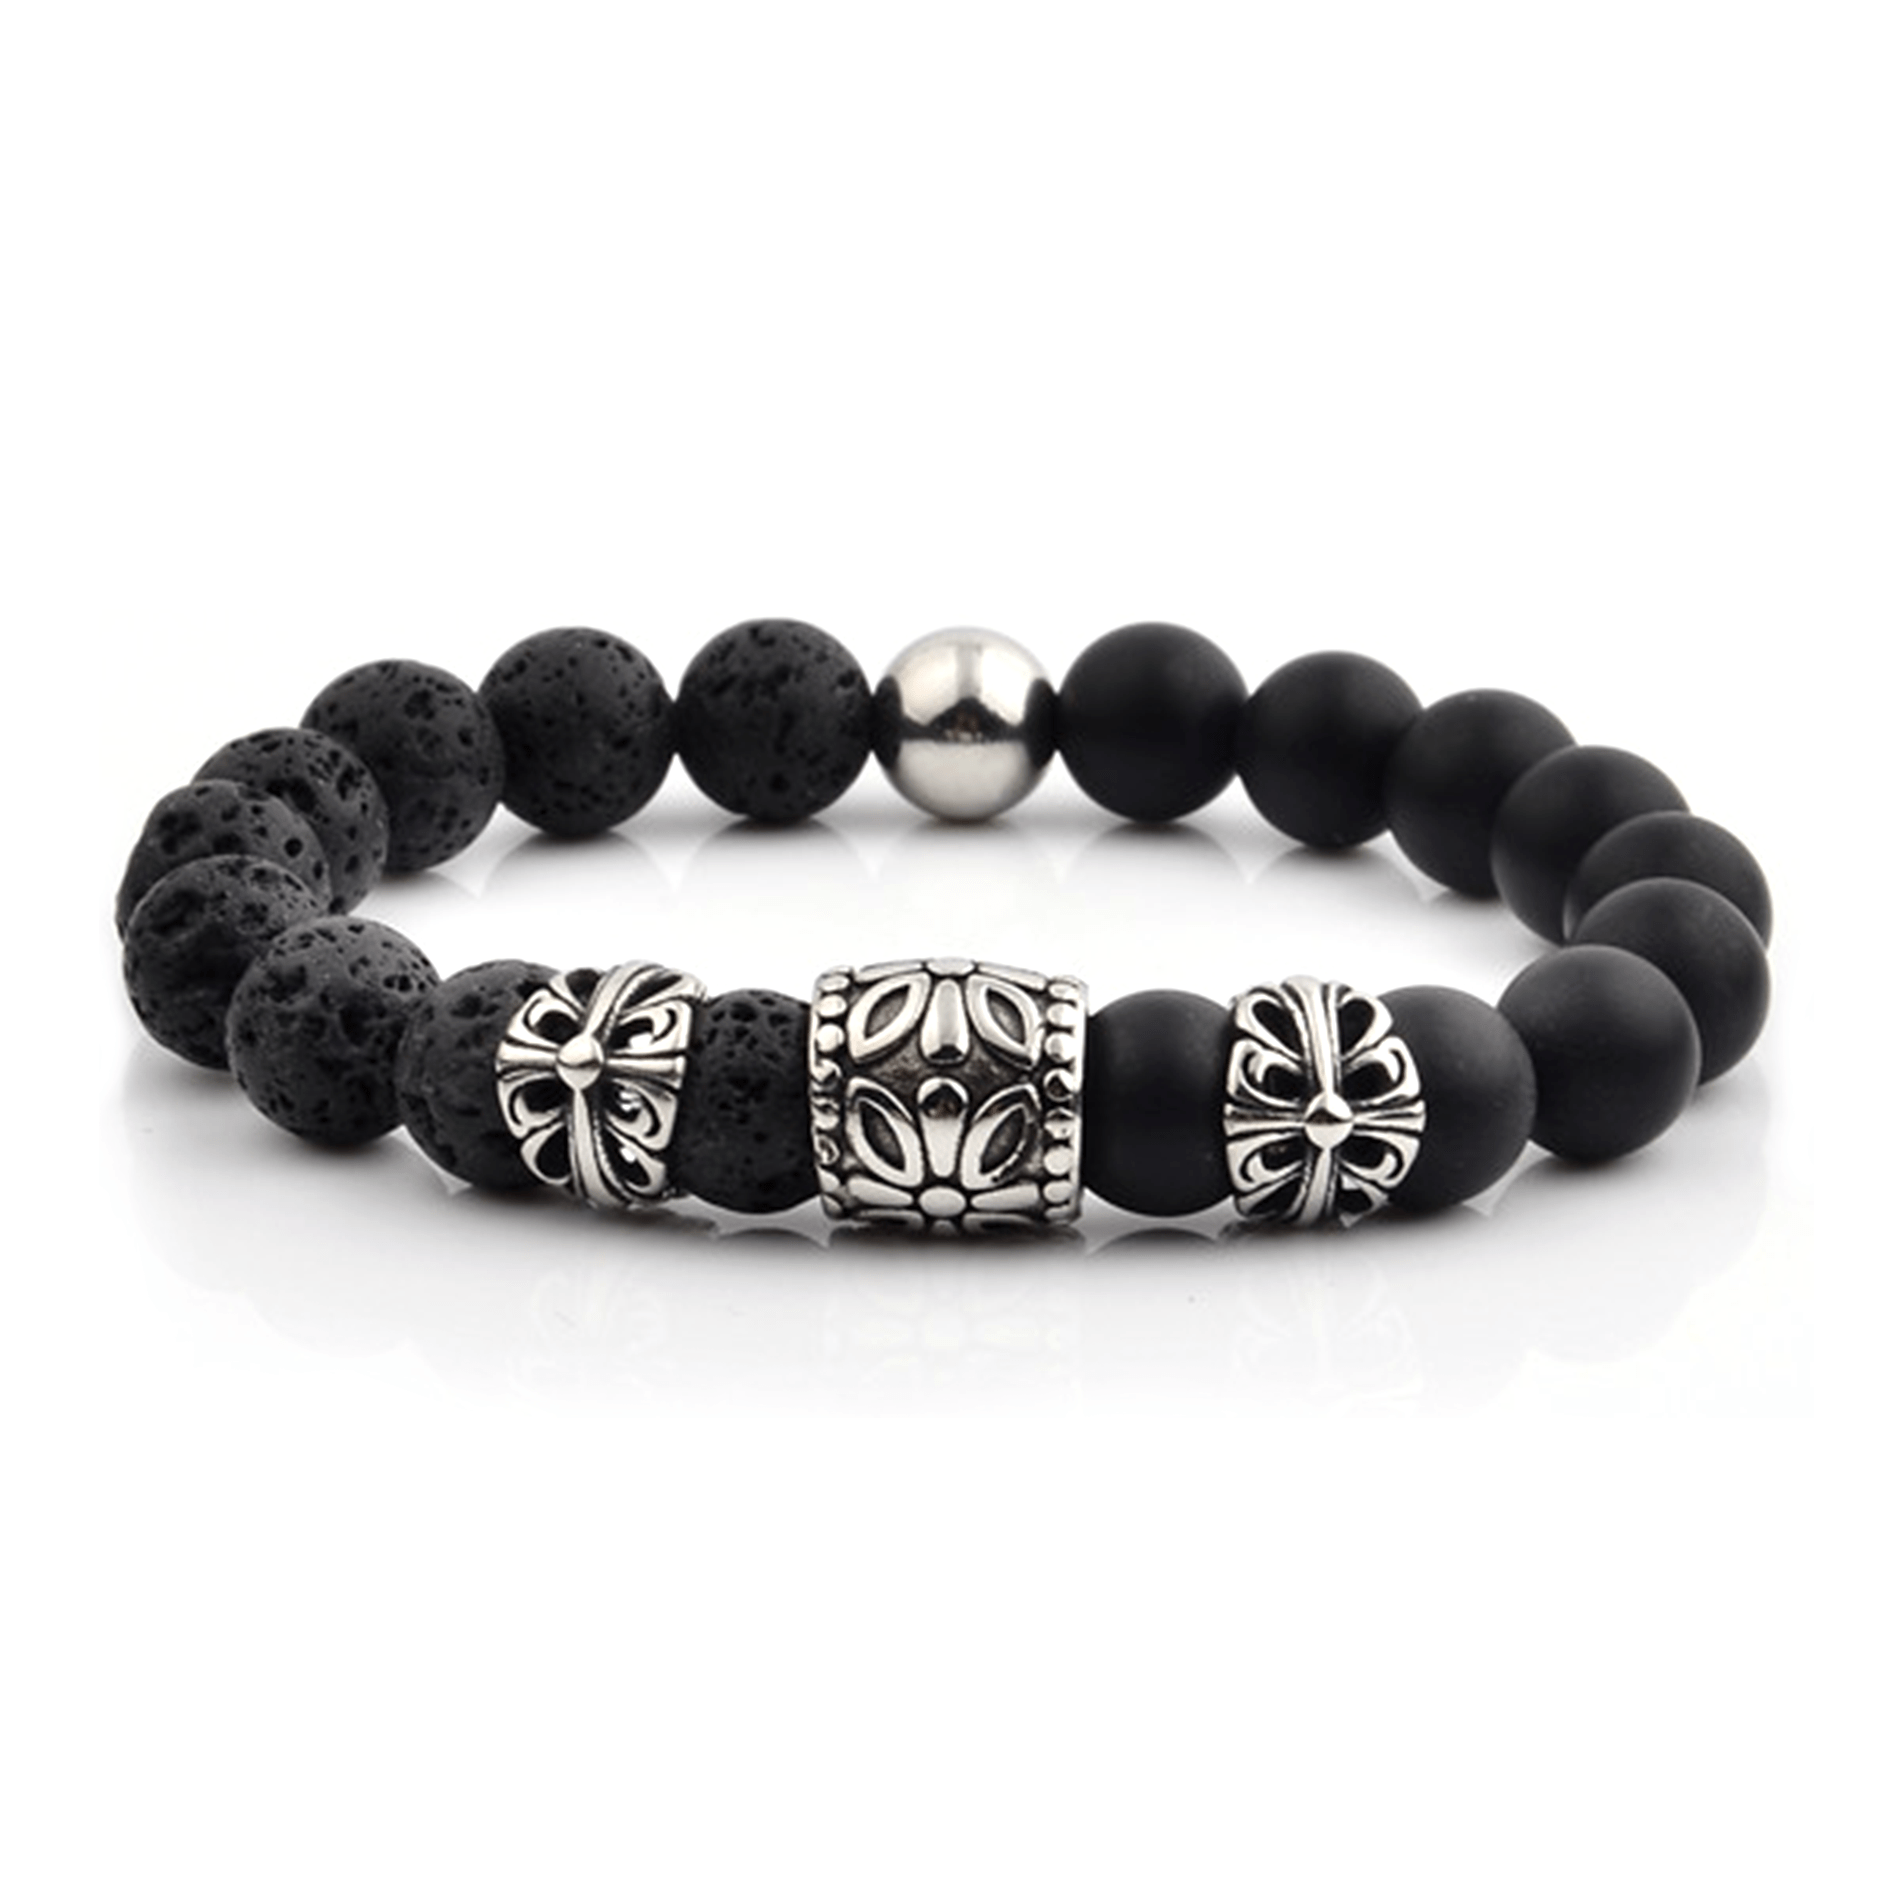 HYLIZO X Series 016 - Black Matte Onyx & Volcano Beaded bracelet with 316 Stainless Steel Luxury Floral Engraving